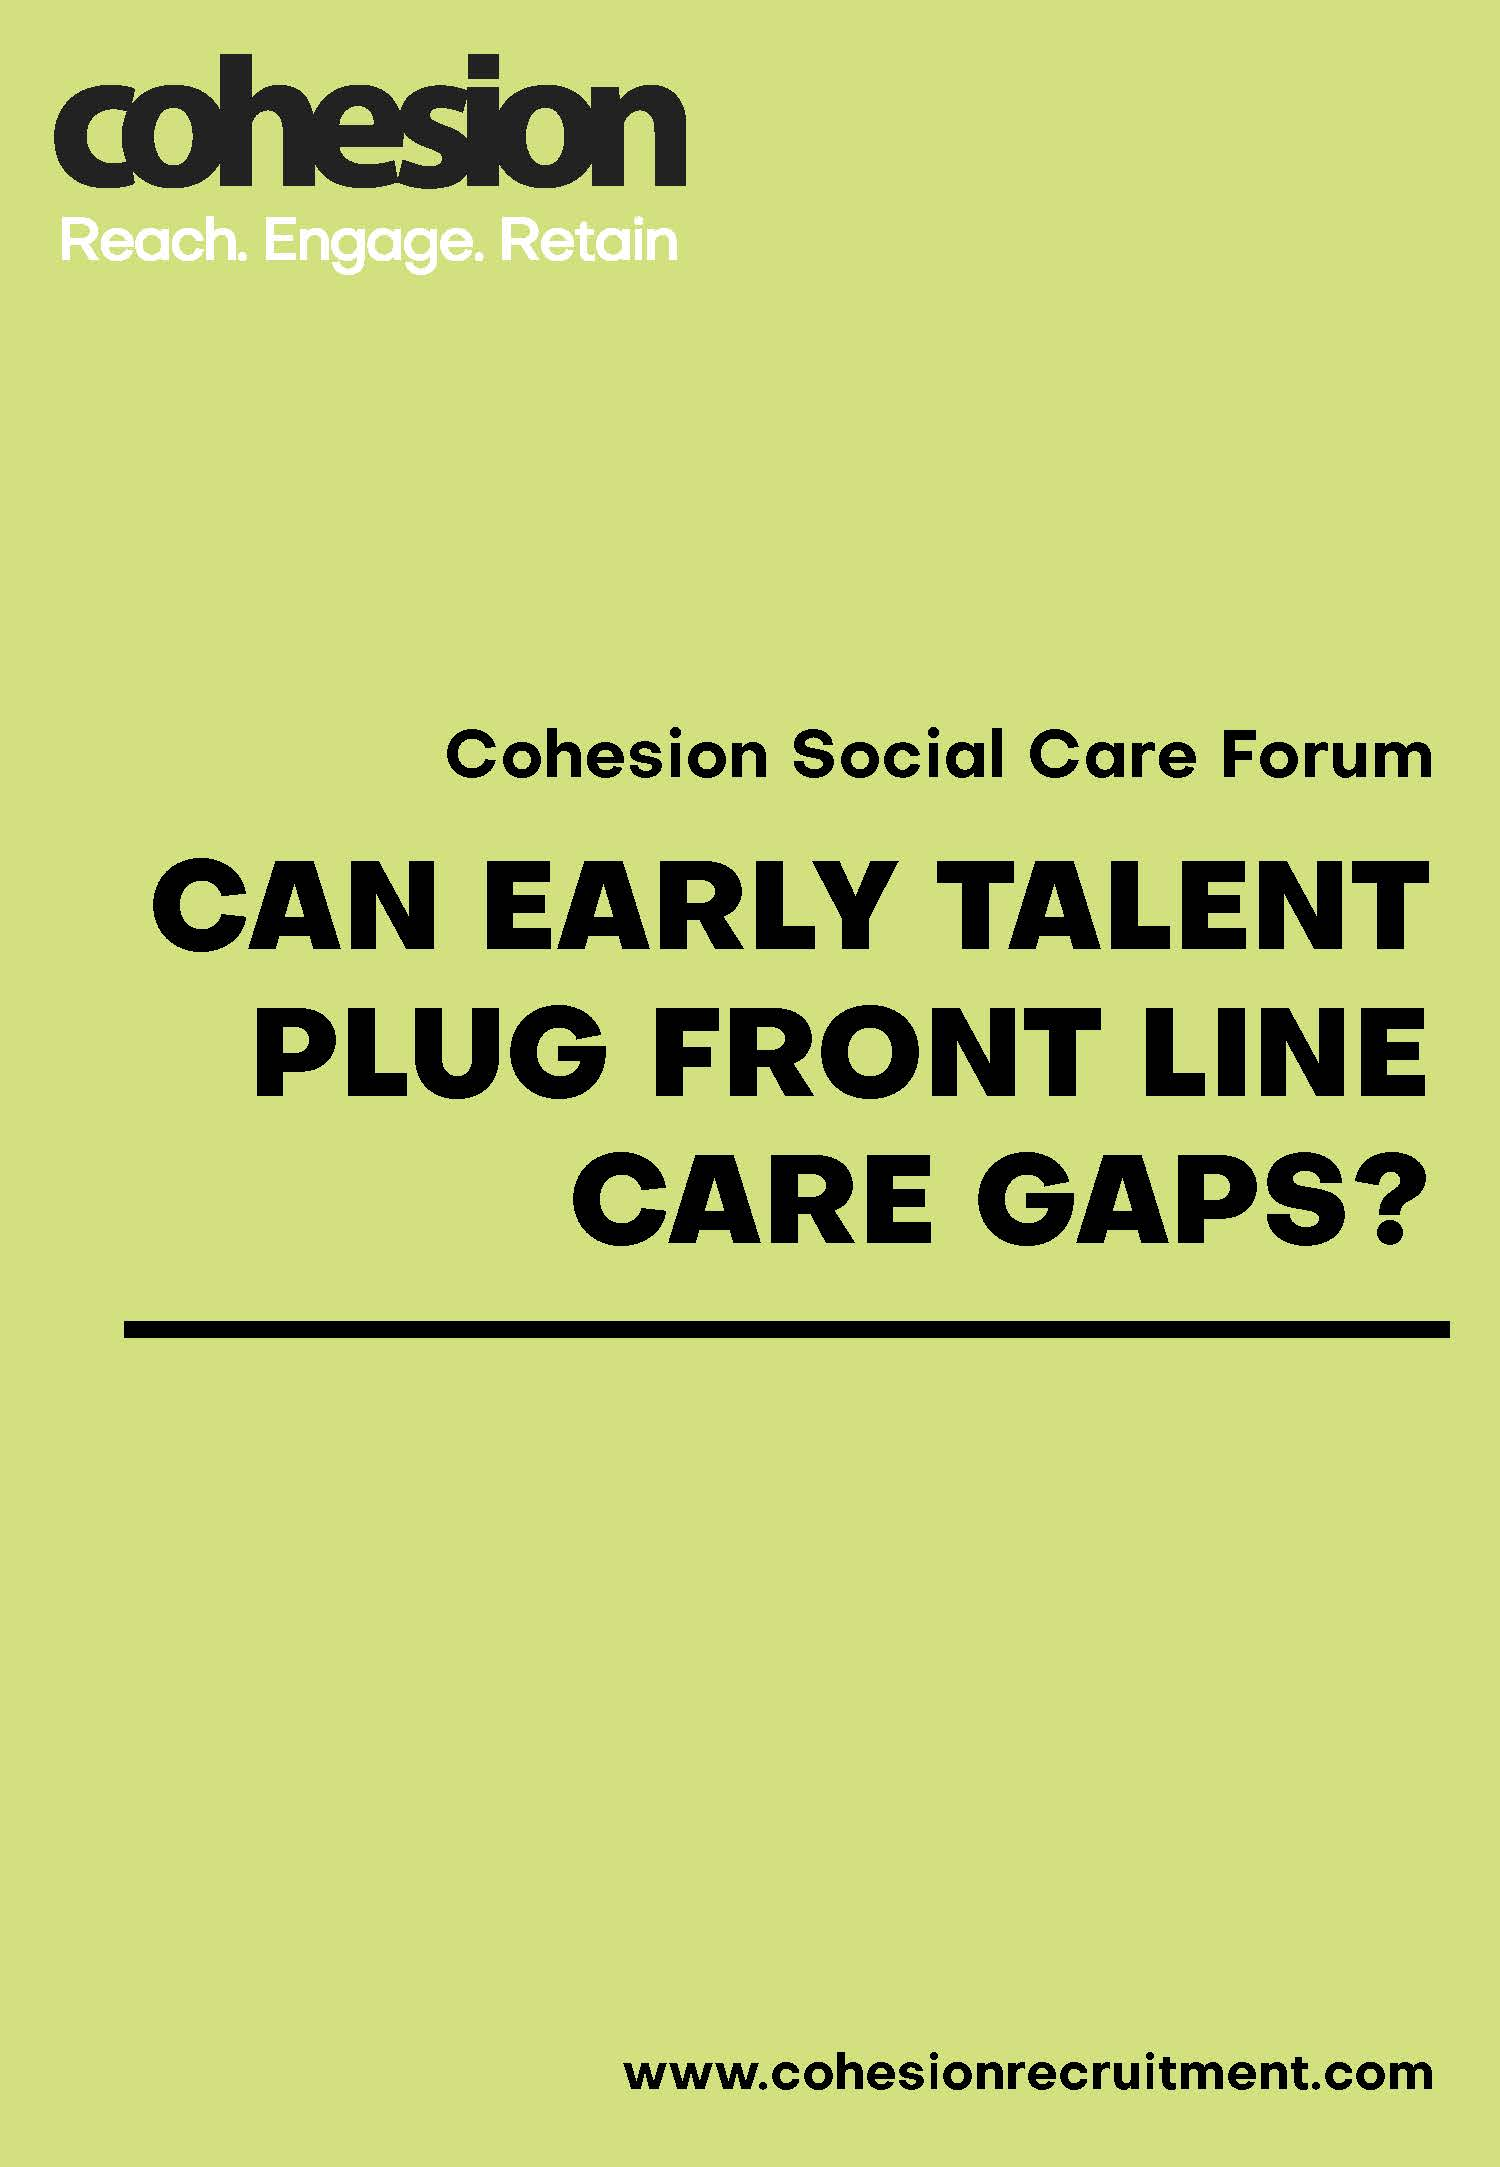 Can Early Talent Plug Frontline Care Gaps